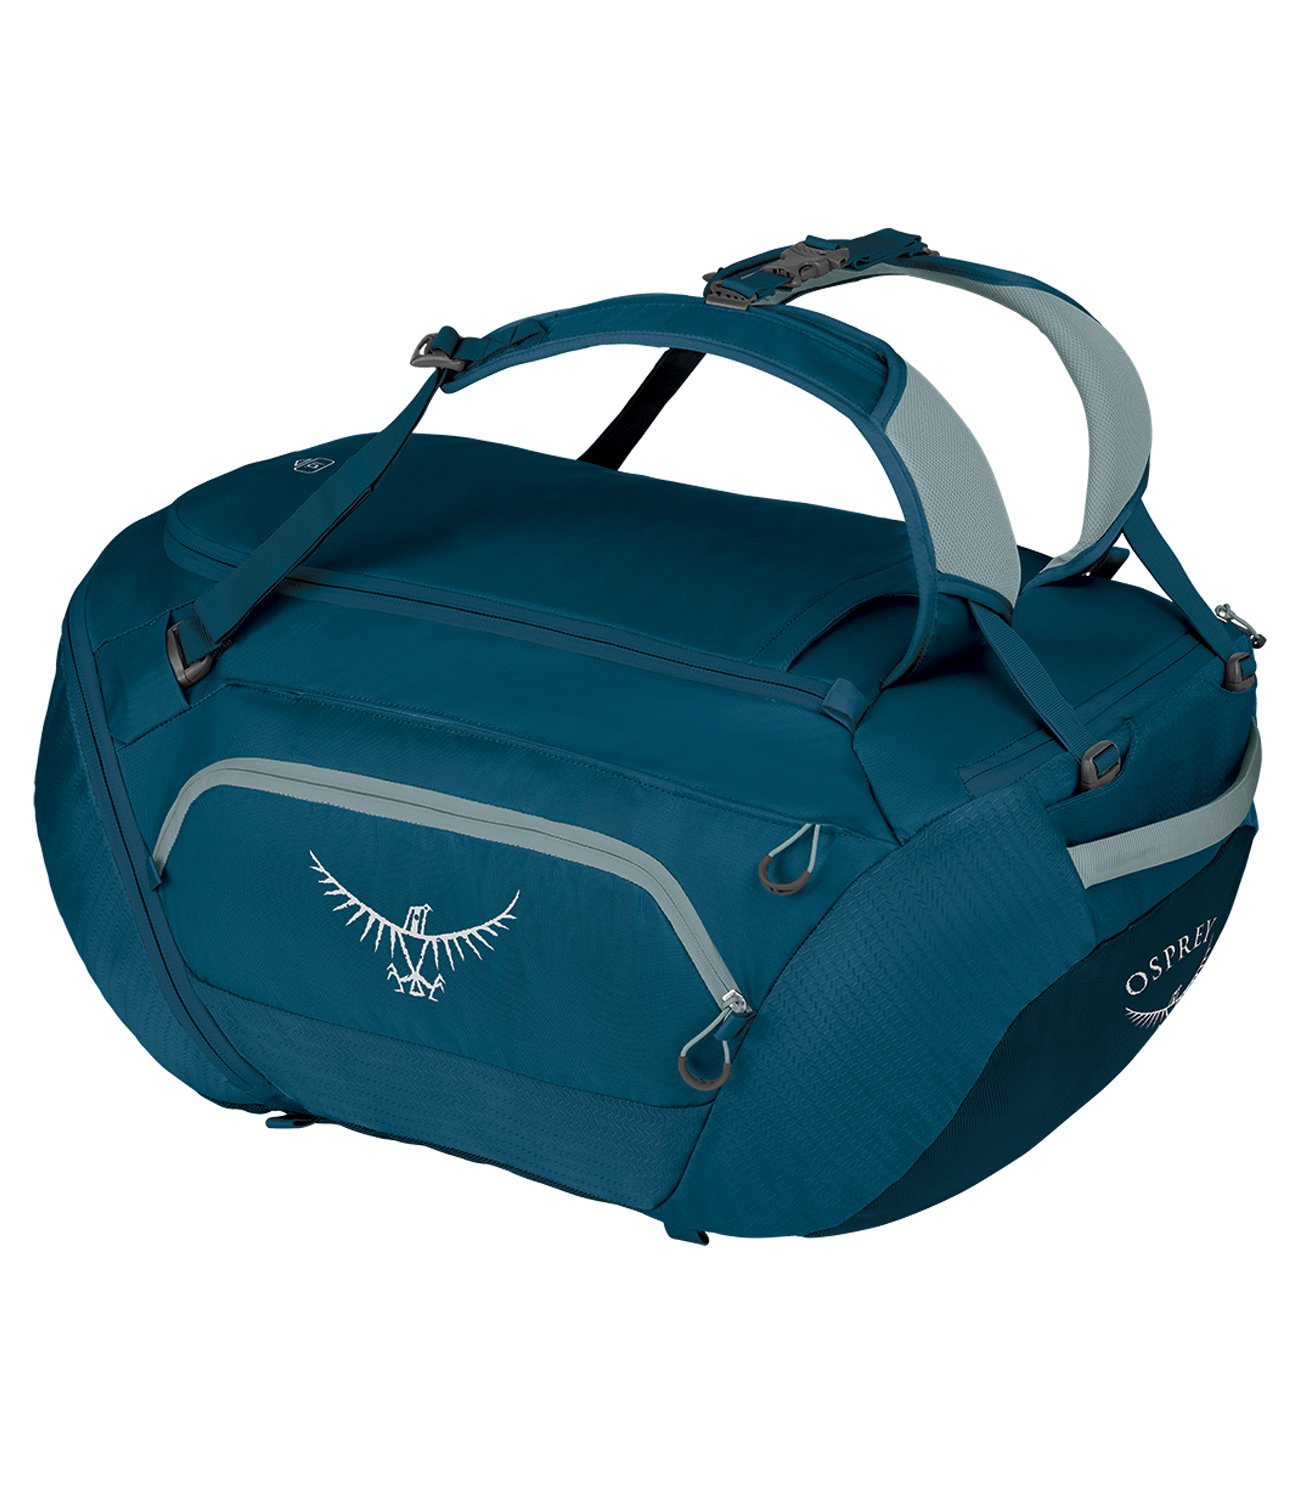 Osprey Packs Bigkit Duffel Bag, Ice Blue, One Size